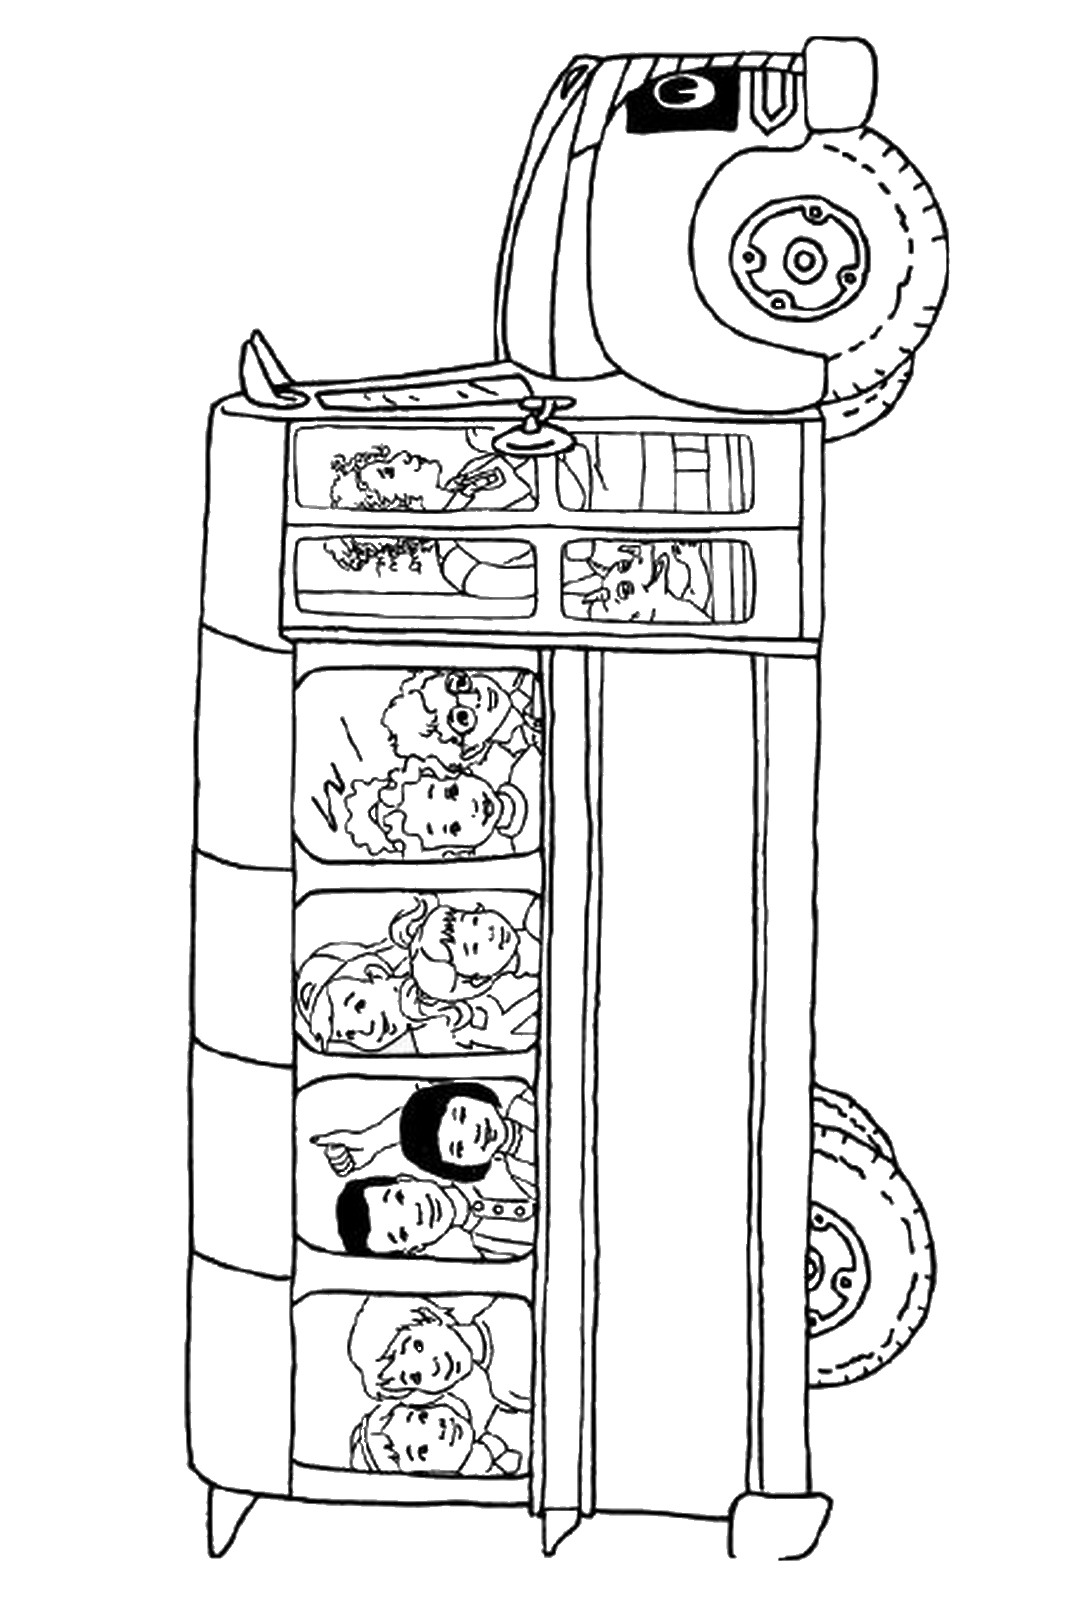 coloring sheet school bus coloring page the magic school bus coloring pages bus coloring coloring page sheet school